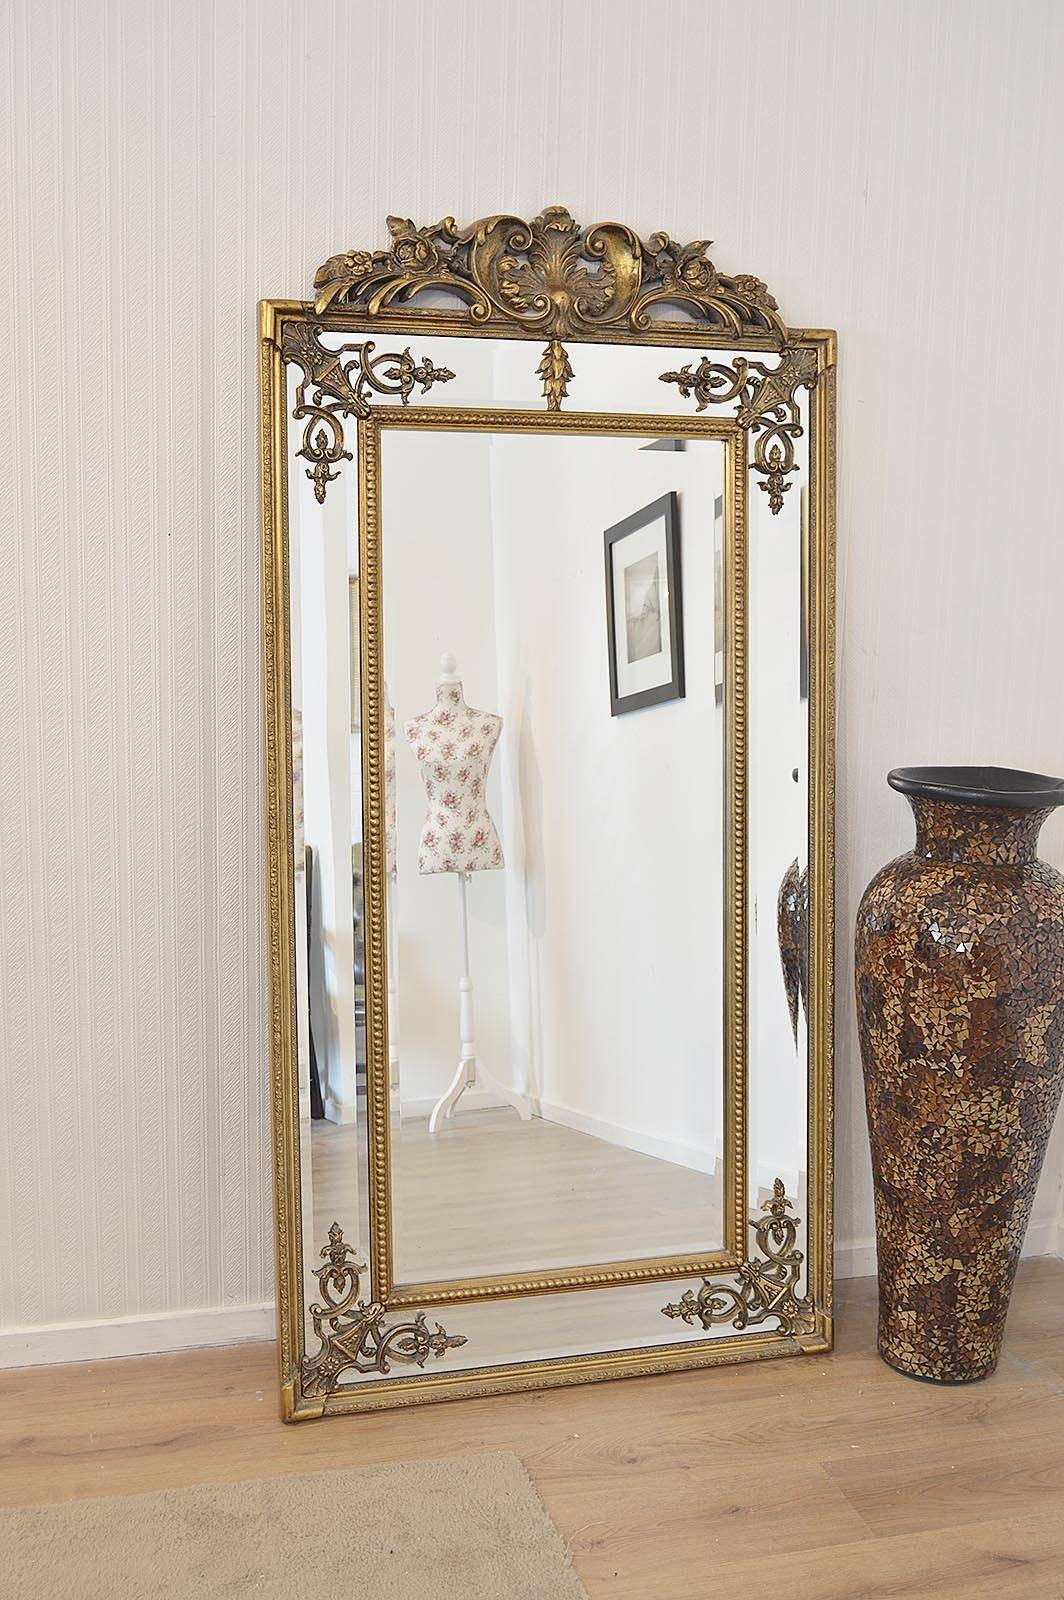 25 ideas of large antique wall mirrors for Large wall mirrors for sale